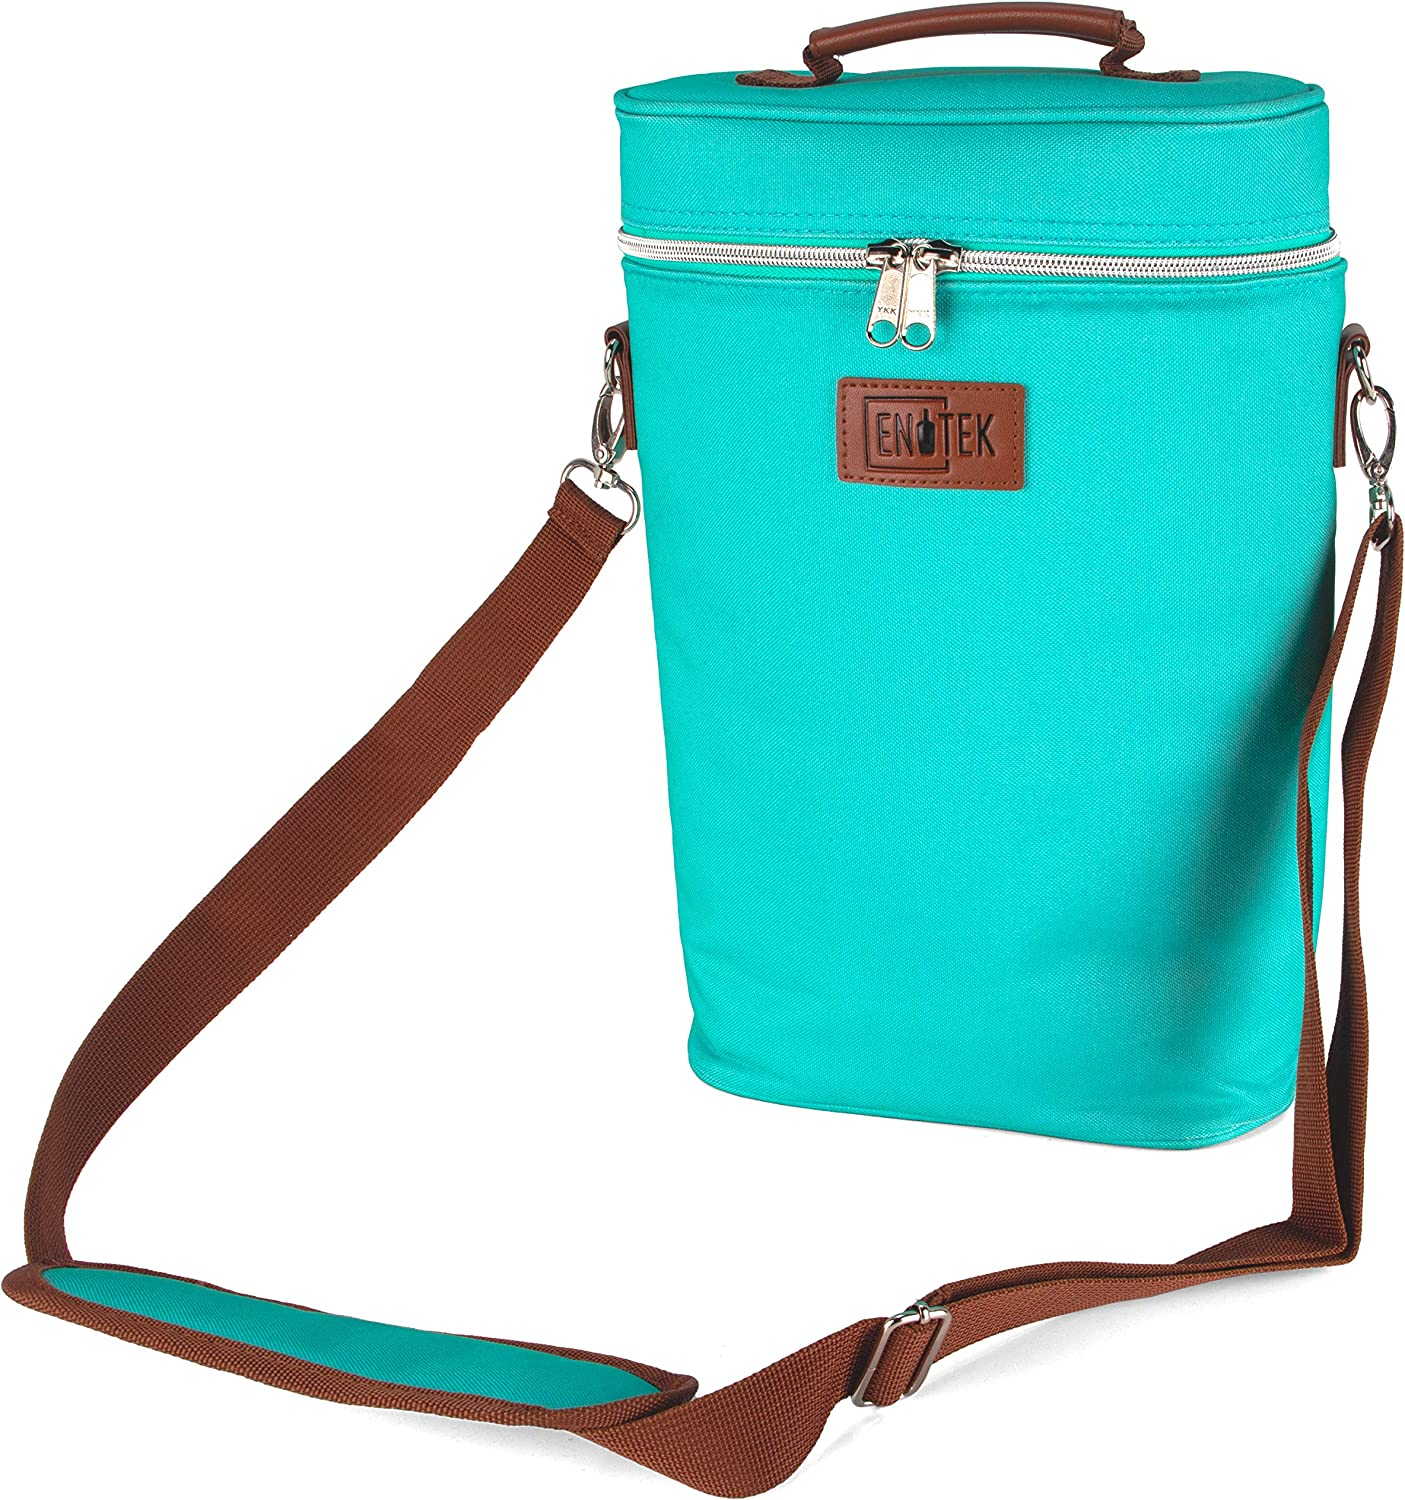 Enotek Wine Bag | Wine Carrier 2 Bottle | Insulated Wine Tote Bag | Wine Travel Bag | Wine Cooler Bag | Wine Totes and Carriers | Wine Bags for Travel | Leak Proof Wine Purse | Two Bottles - Turquoise